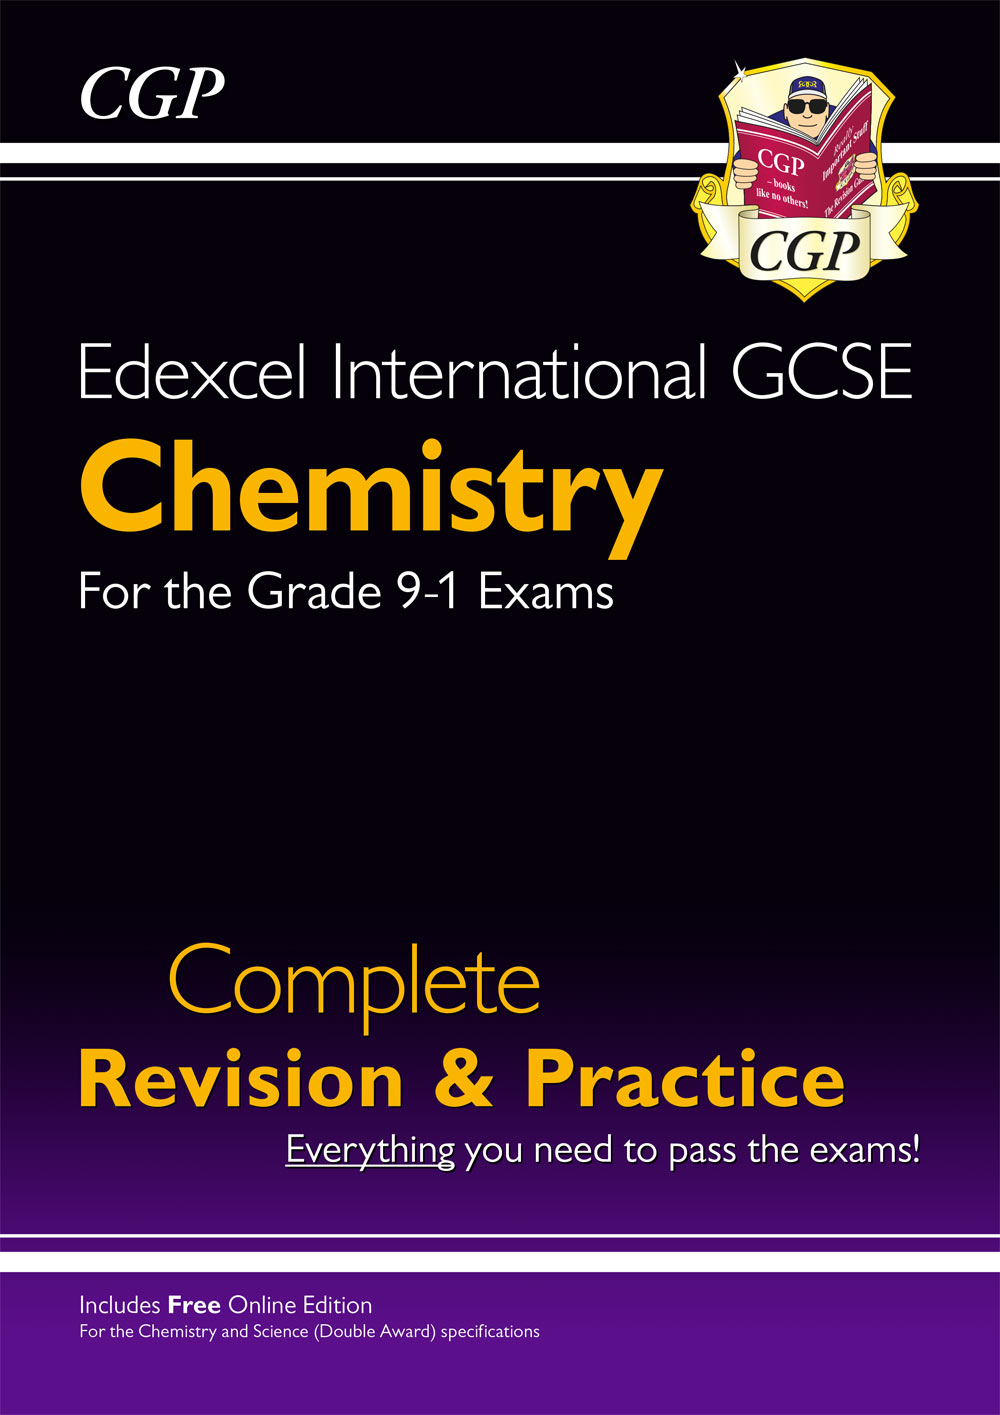 CESI42 - New Grade 9-1 Edexcel International GCSE Chemistry: Complete Revision & Practice with Onlin